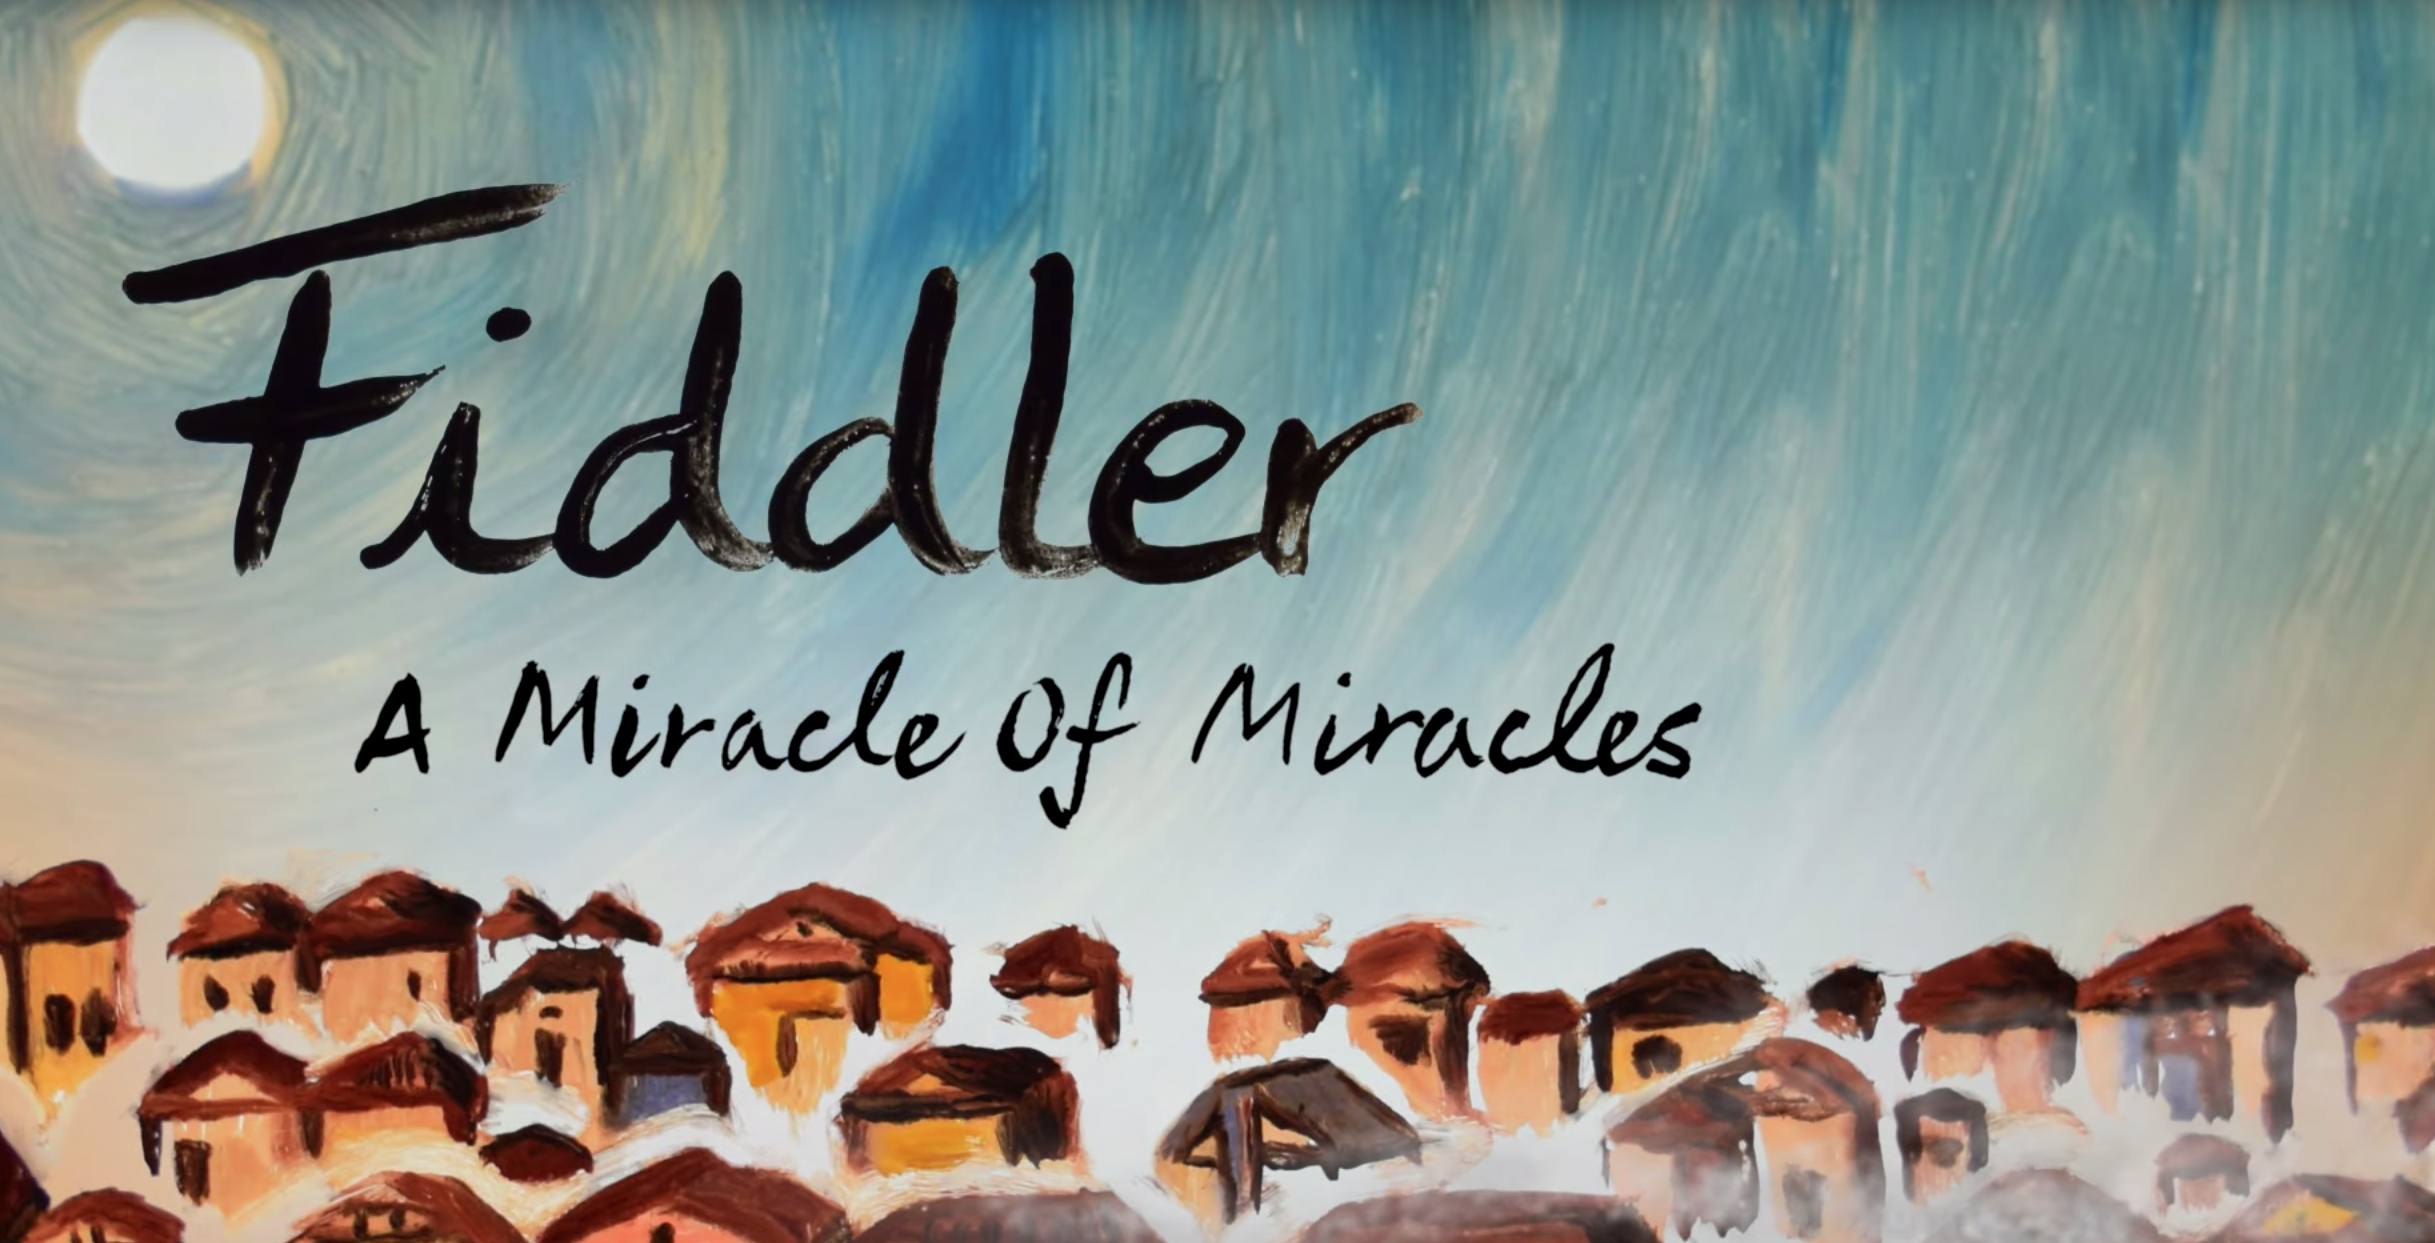 Watch the Trailer for the New Fiddler on the Roof